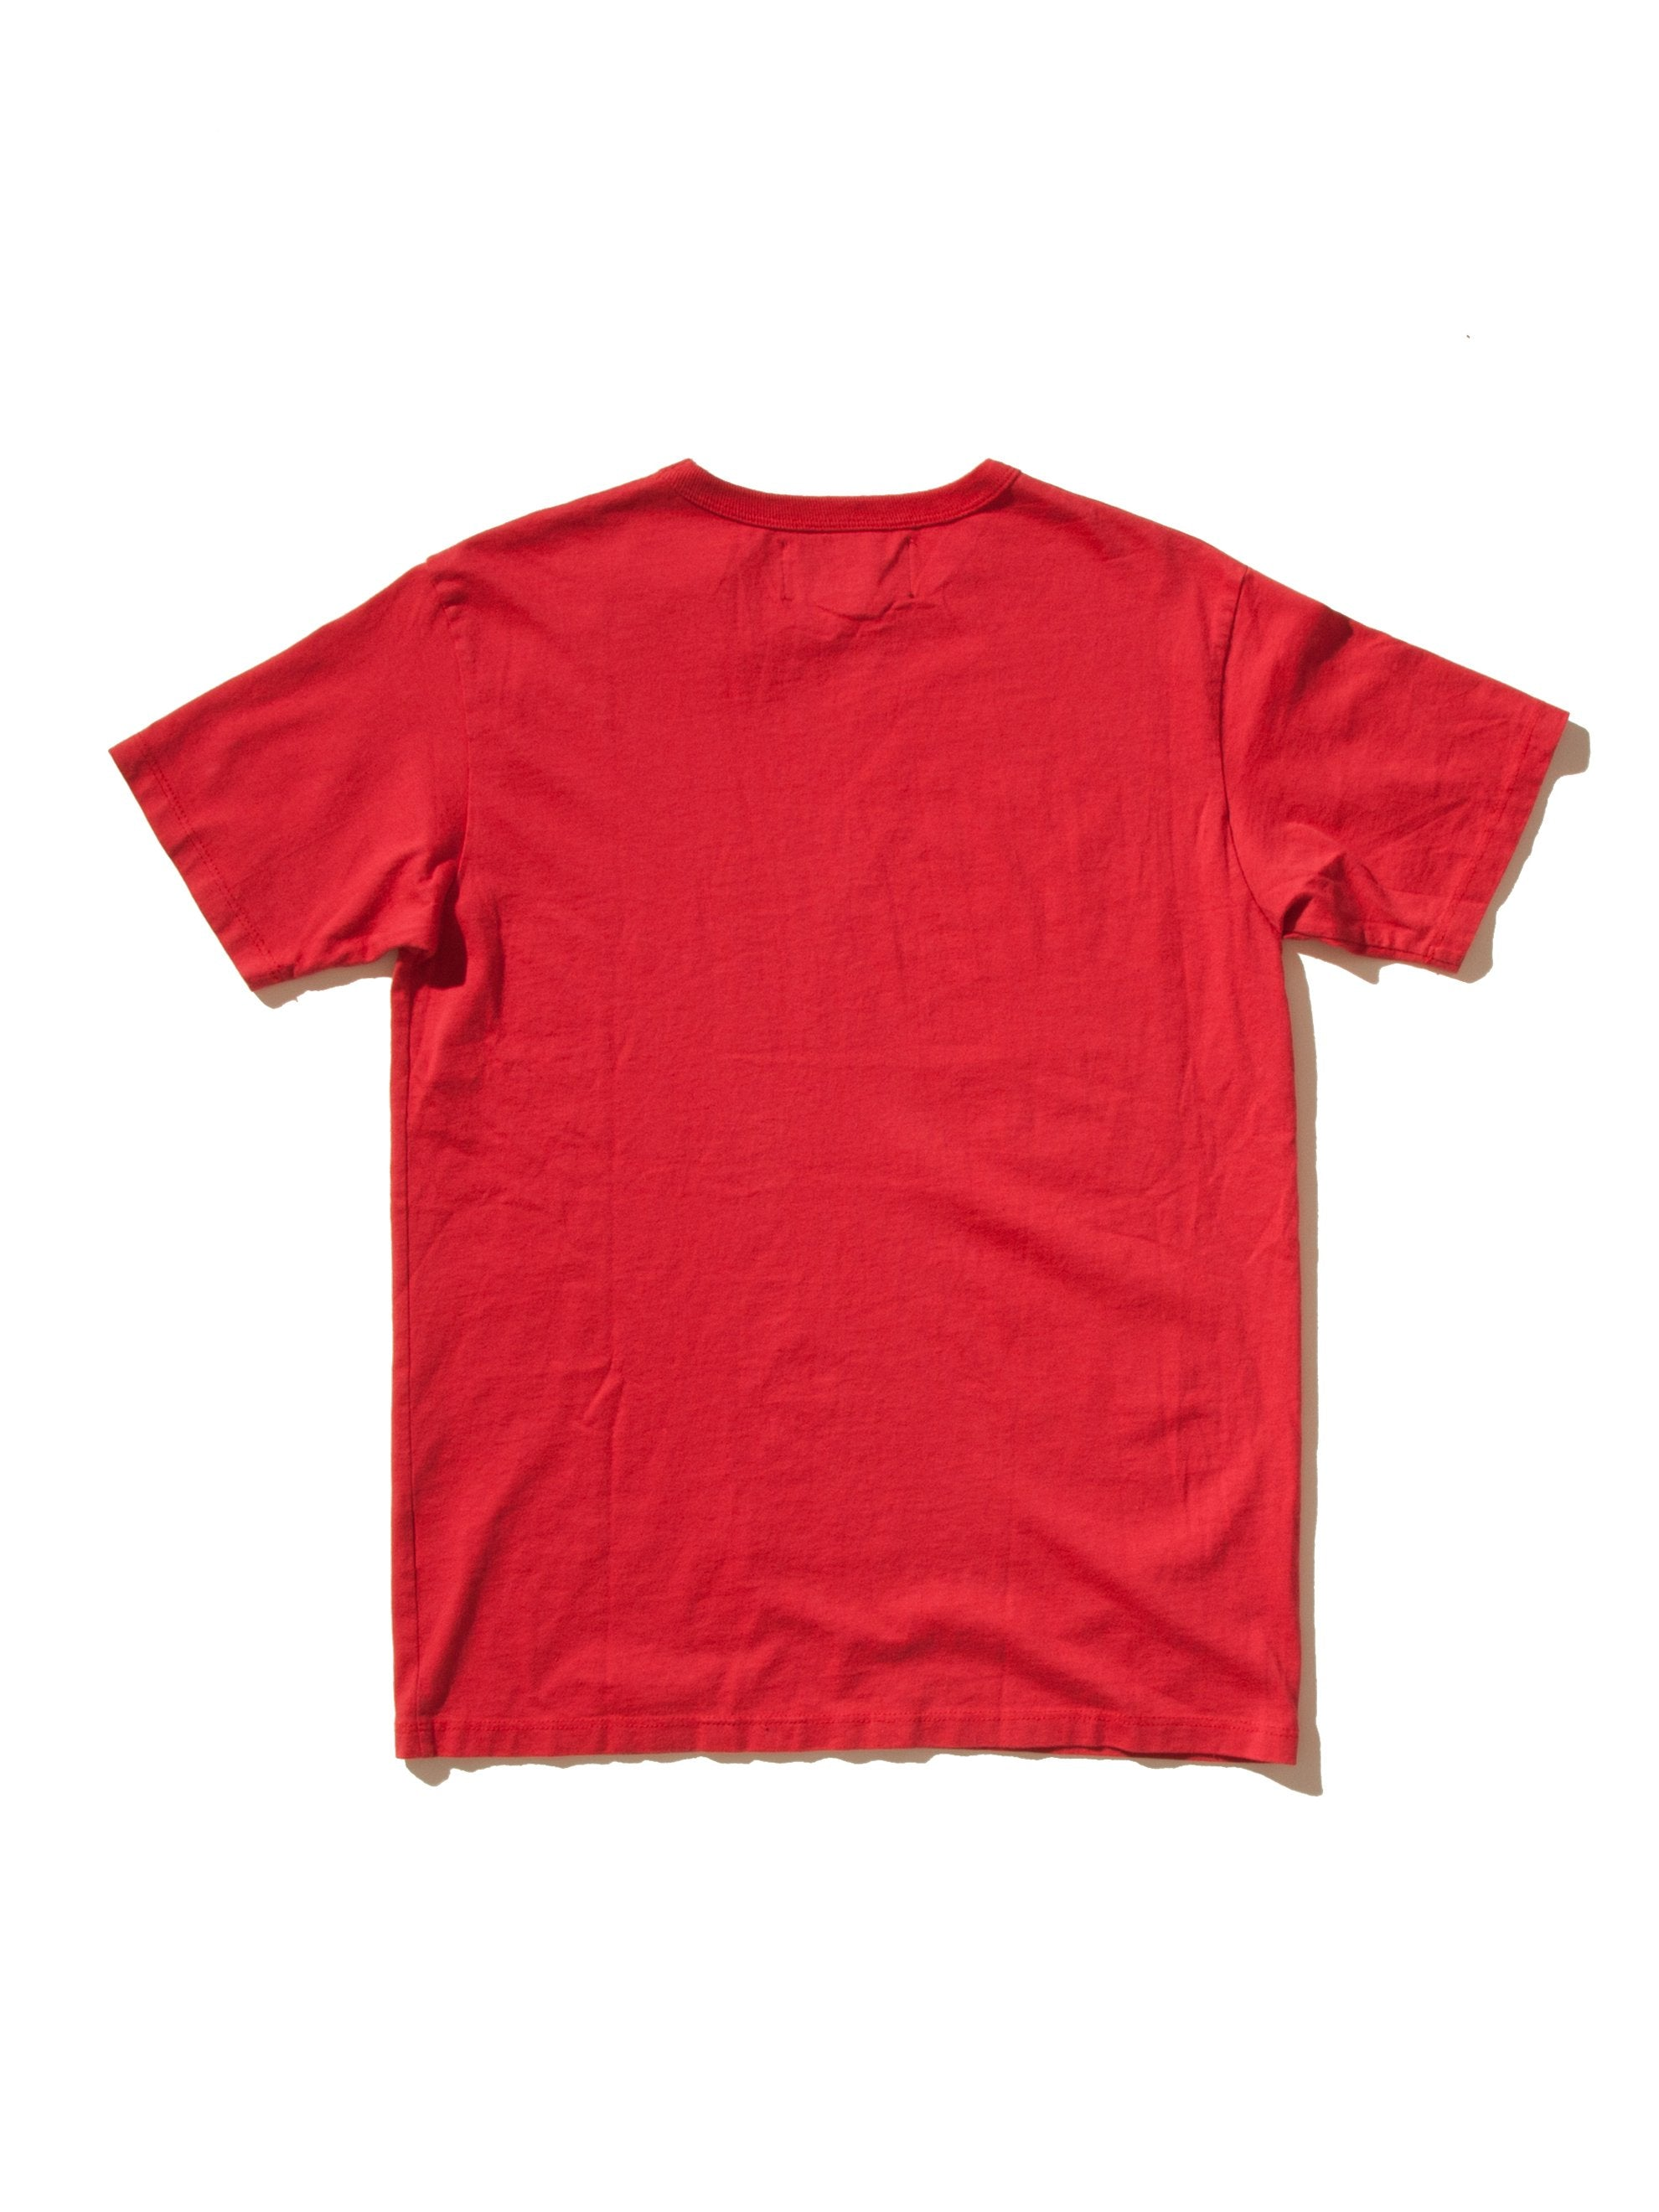 Red California T-Shirt 7